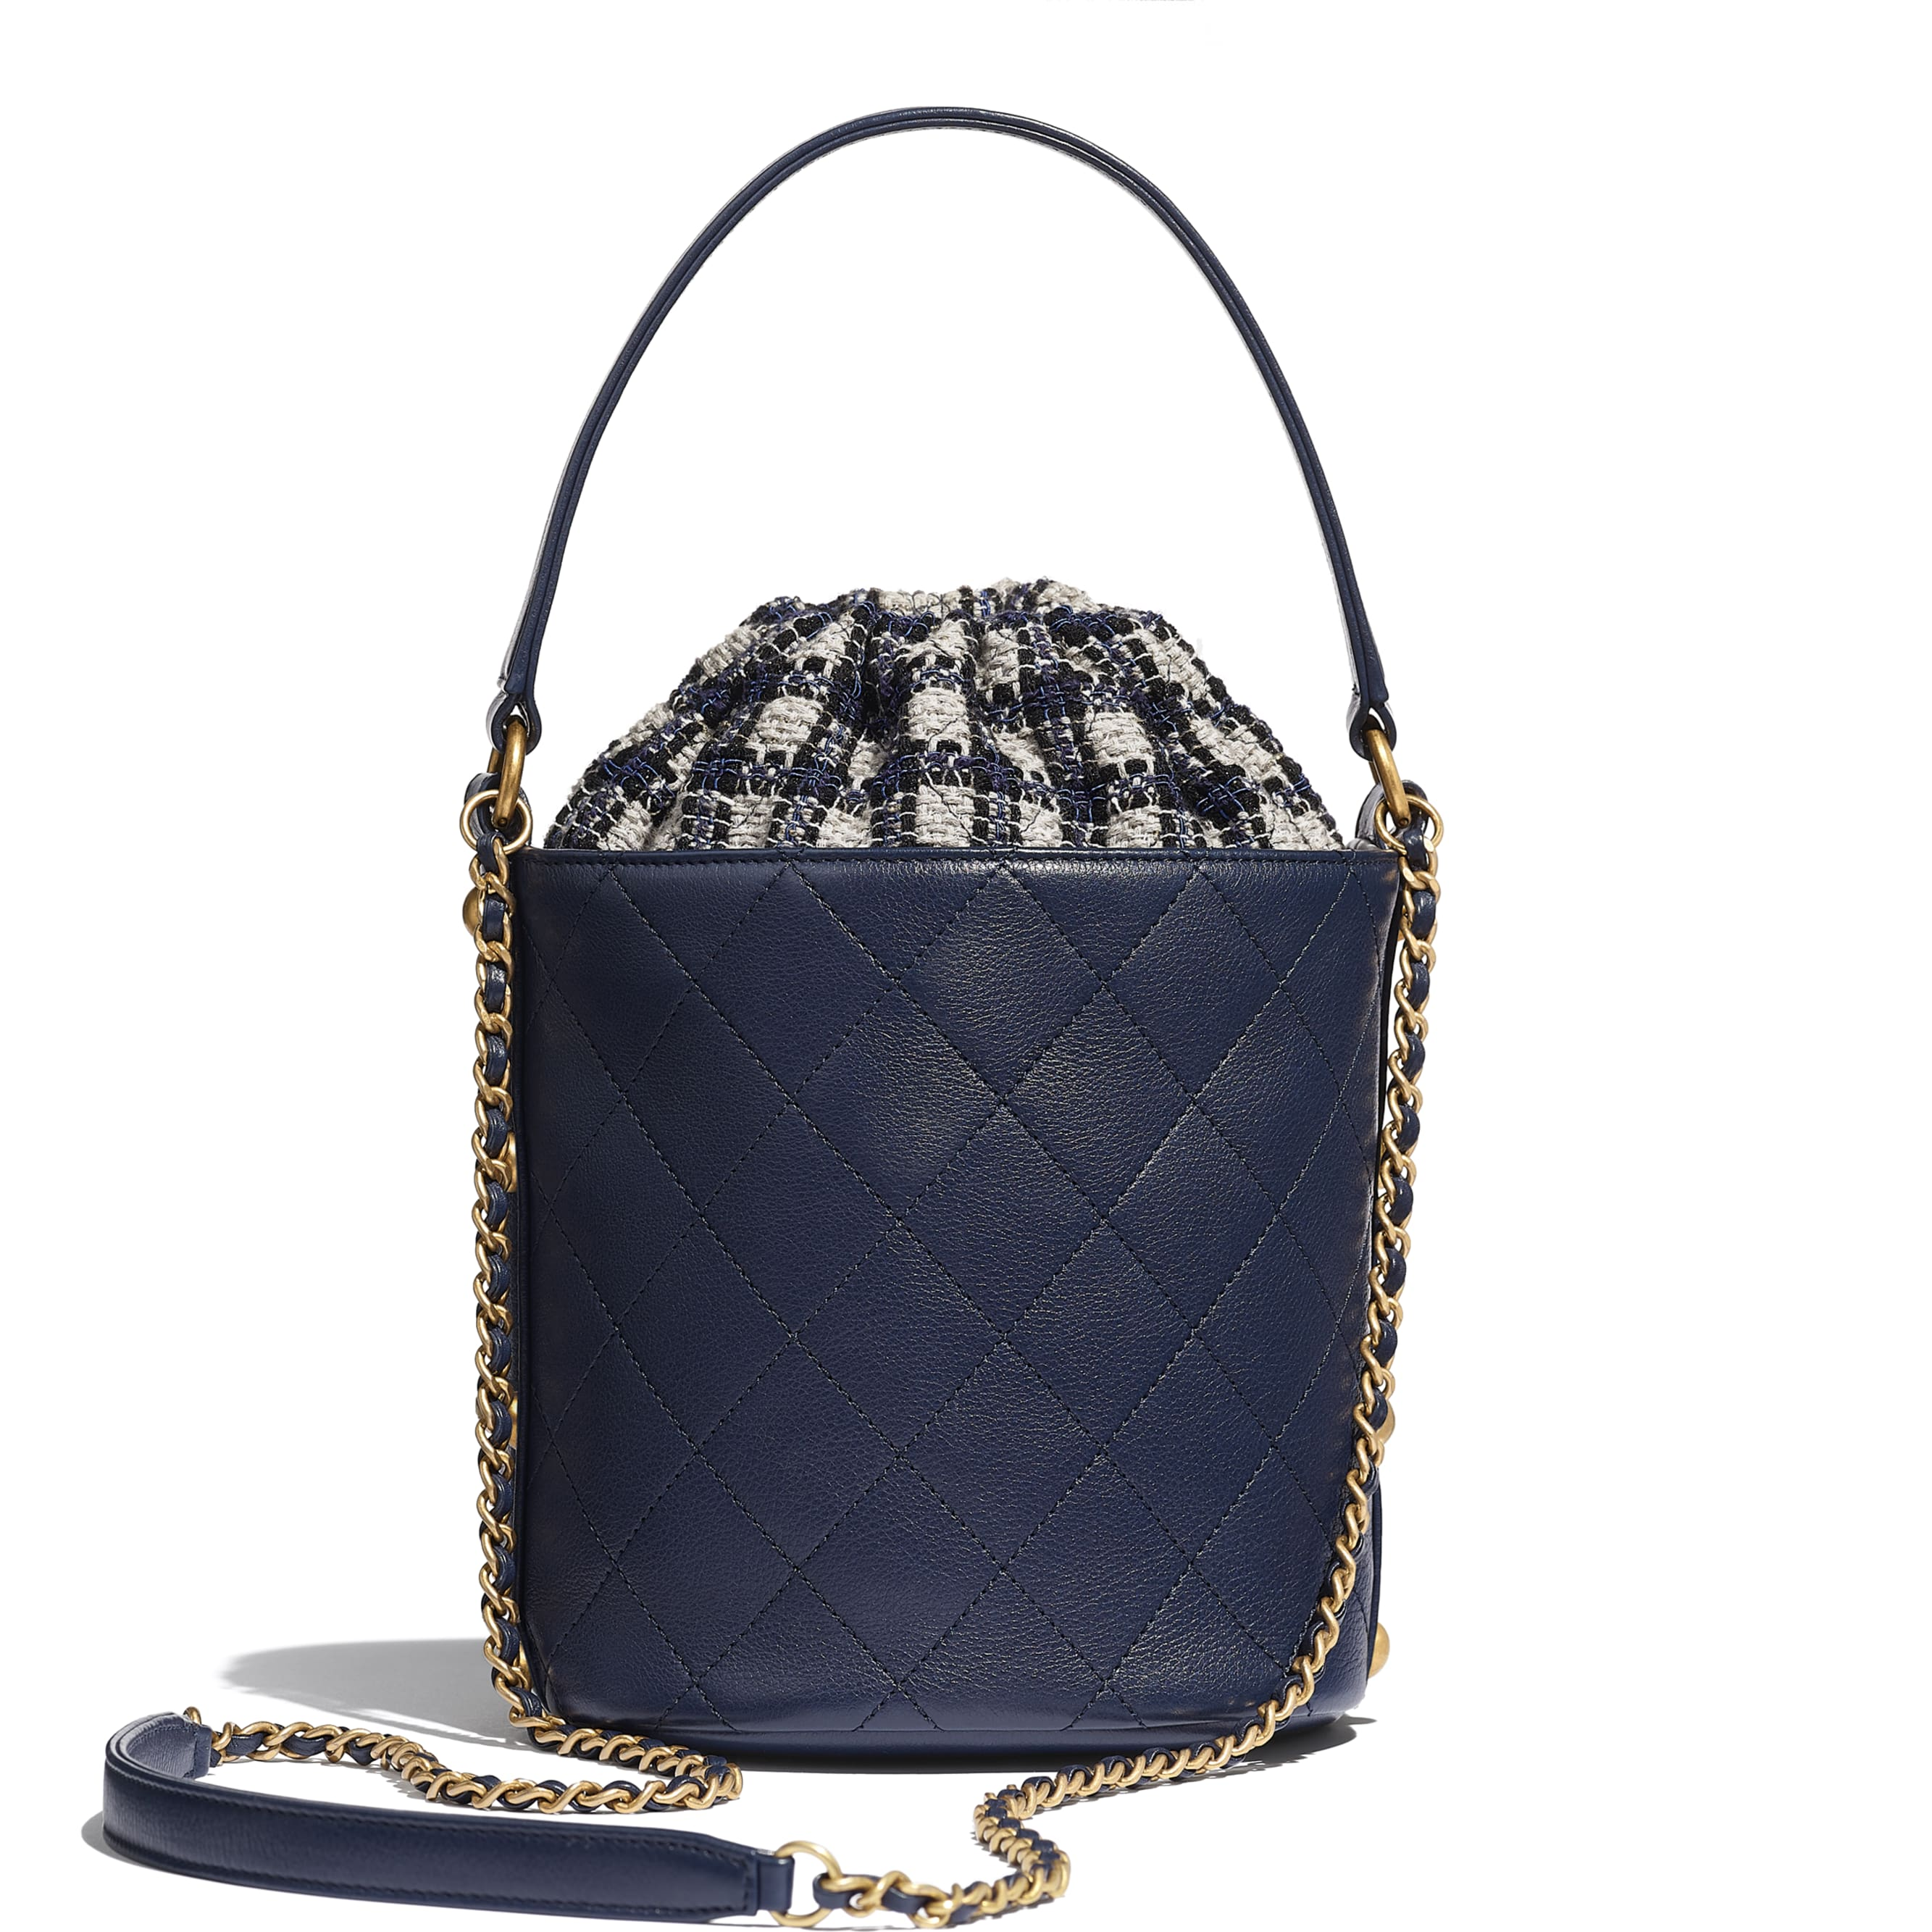 Drawstring Bag - Navy Blue, Black & Grey - Calfskin, Tweed & Gold-Tone Metal - CHANEL - Alternative view - see standard sized version